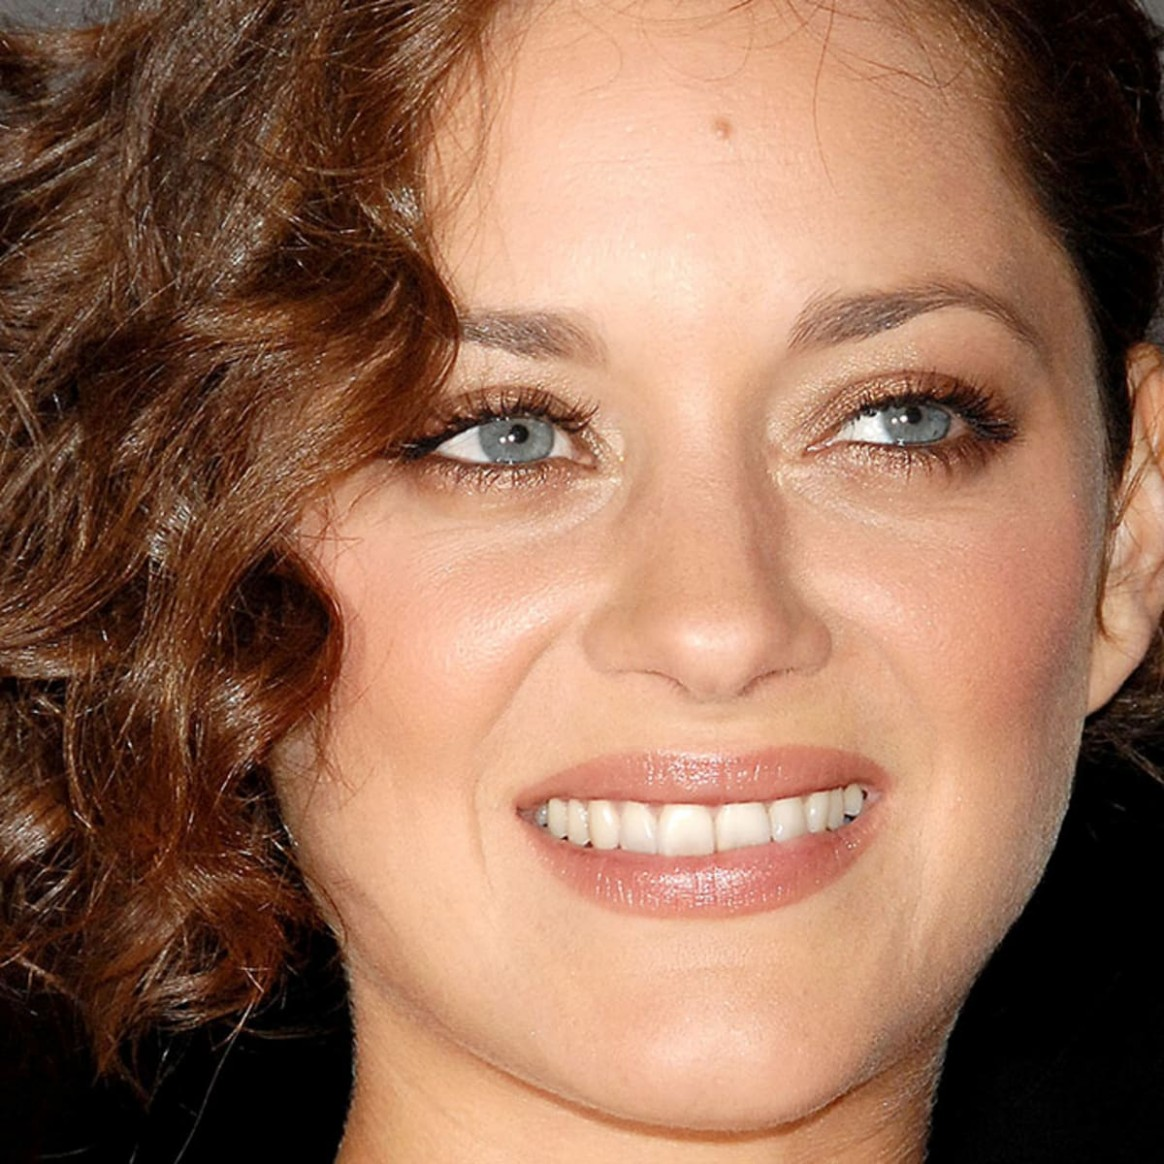 10 Of The Best Hairstyles For Medium Length Curly Hair The Medium Curly Hair